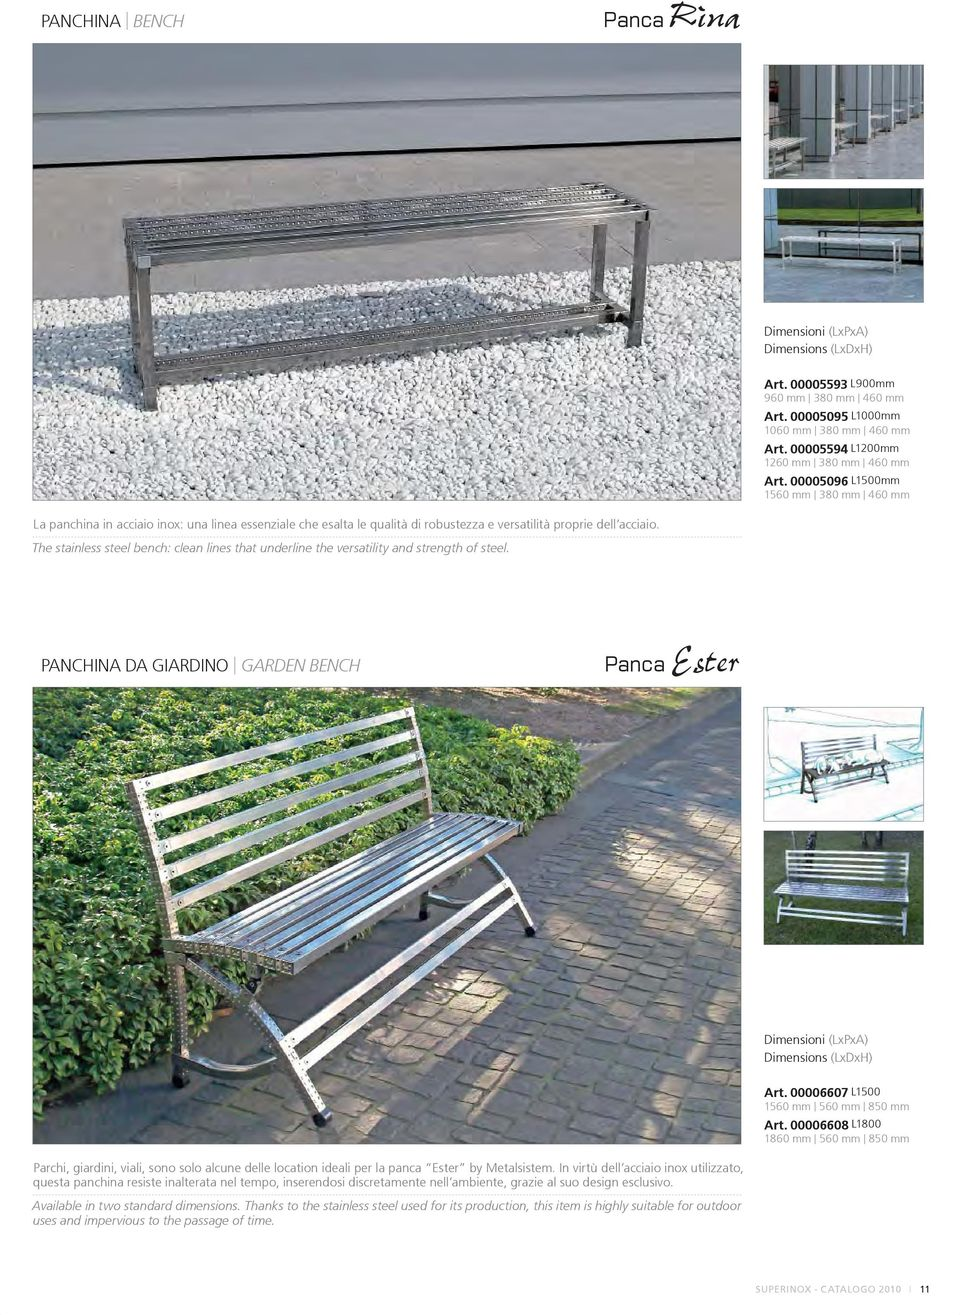 The stainless steel bench: clean lines that underline the versatility and strength of steel. PANCHINA DA GIARDINO GARDEN BENCH Panca Ester Art. 00006607 L1500 1560 mm 560 mm 850 mm Art.